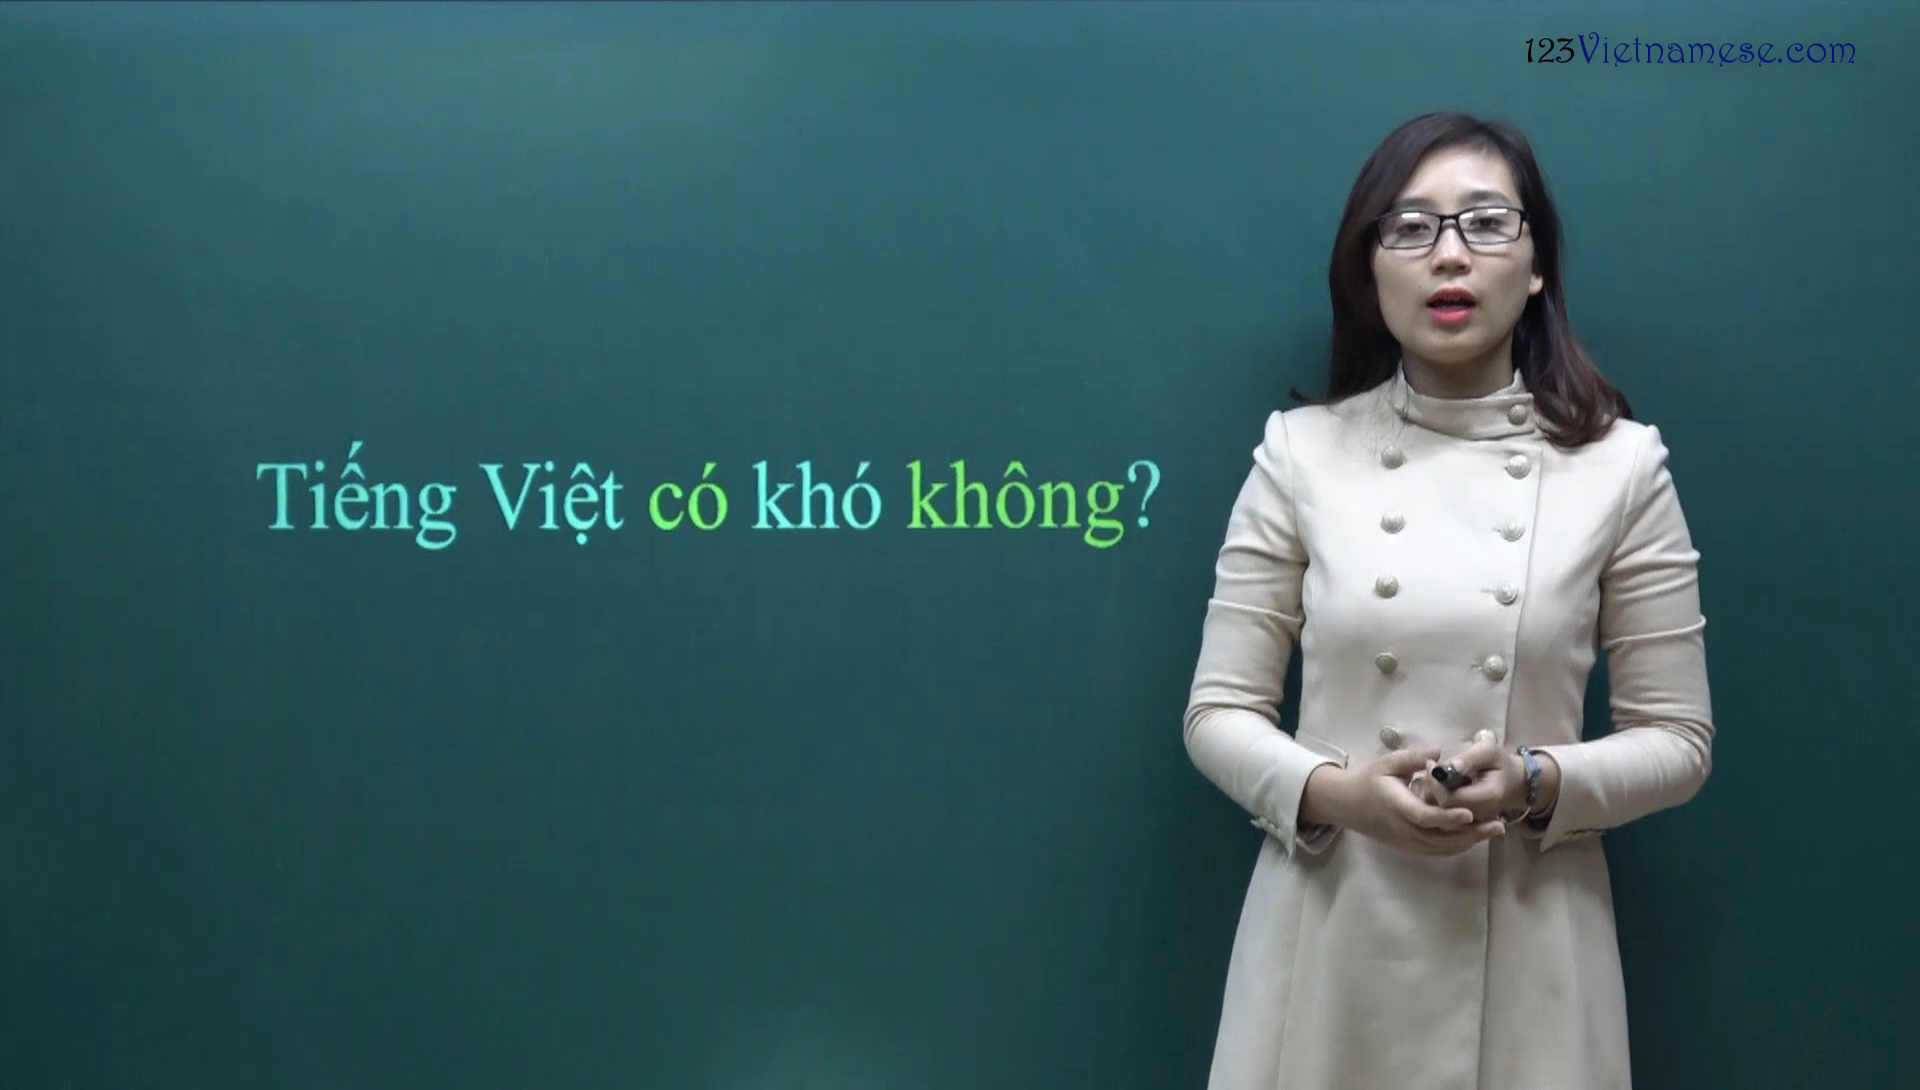 Is Vietnamese difficult?